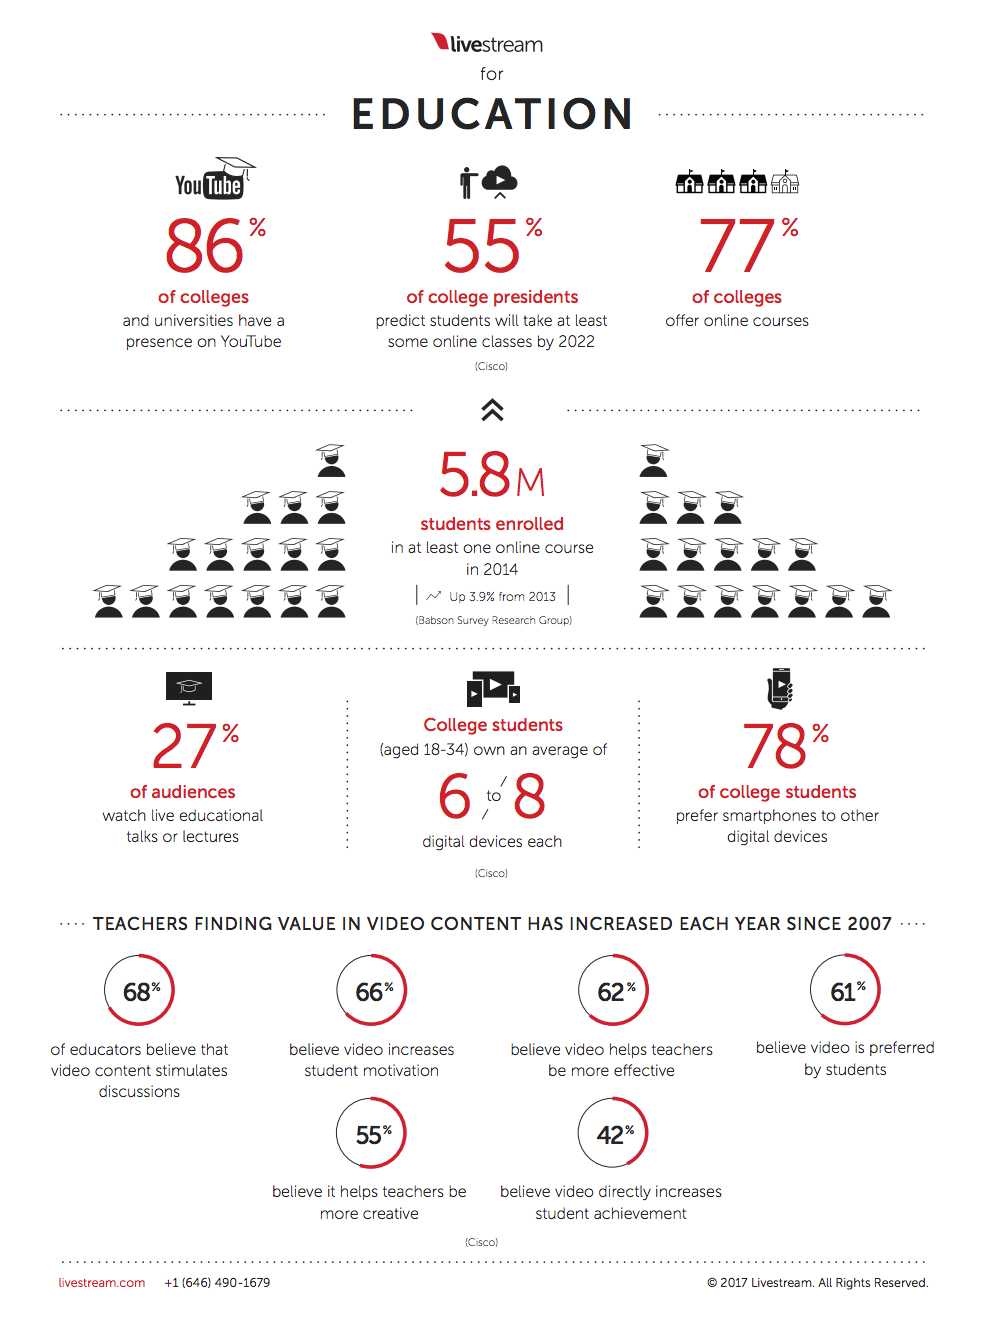 Infographic] 9 Statistics Show How Live Video is Changing